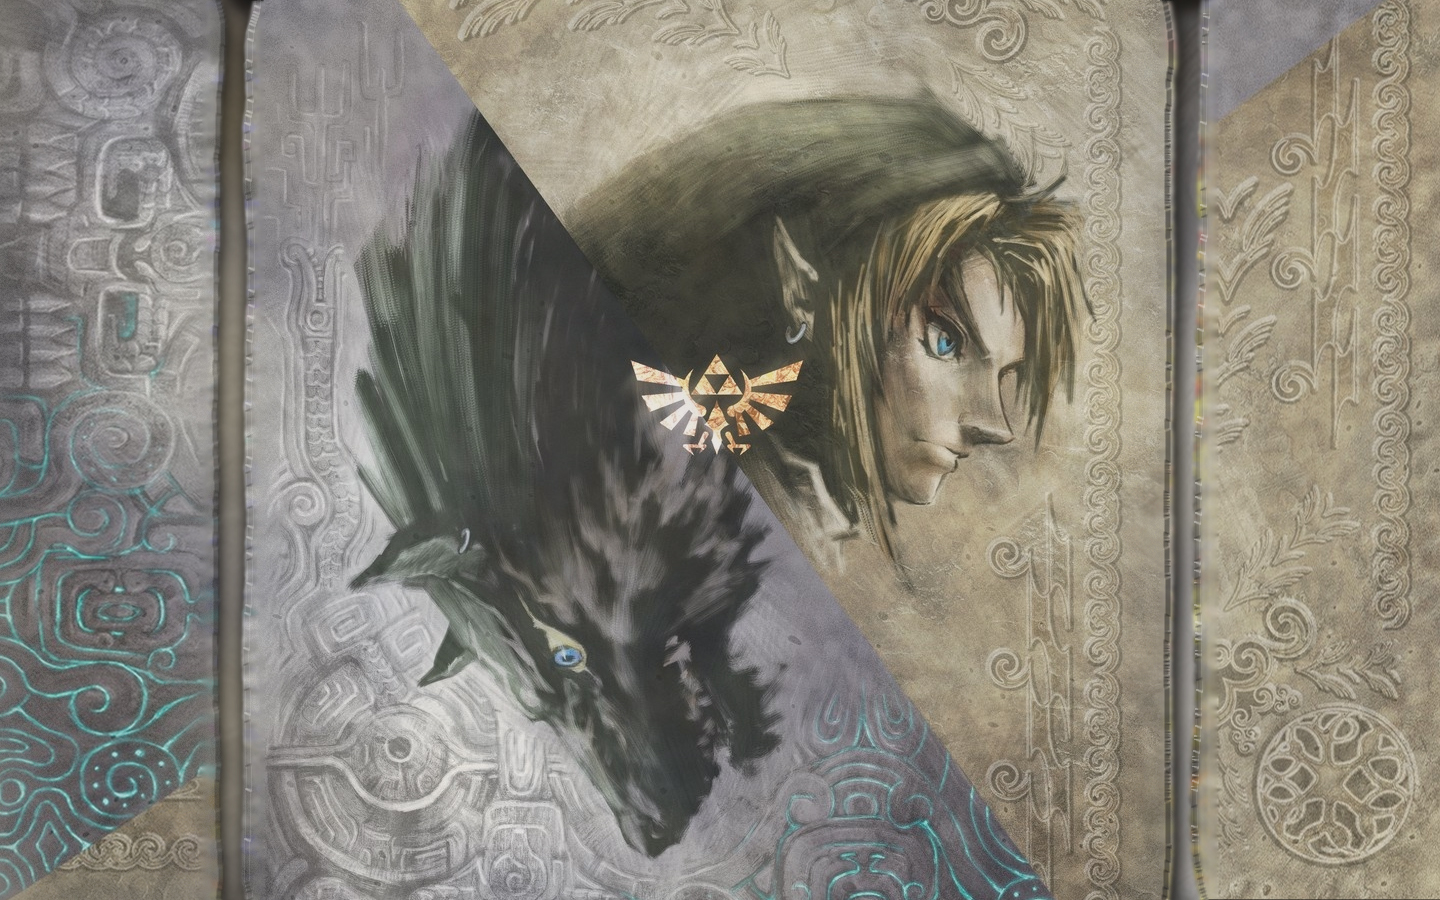 Twilight Princess Wallpaper by Joebot Recreation 1440x900